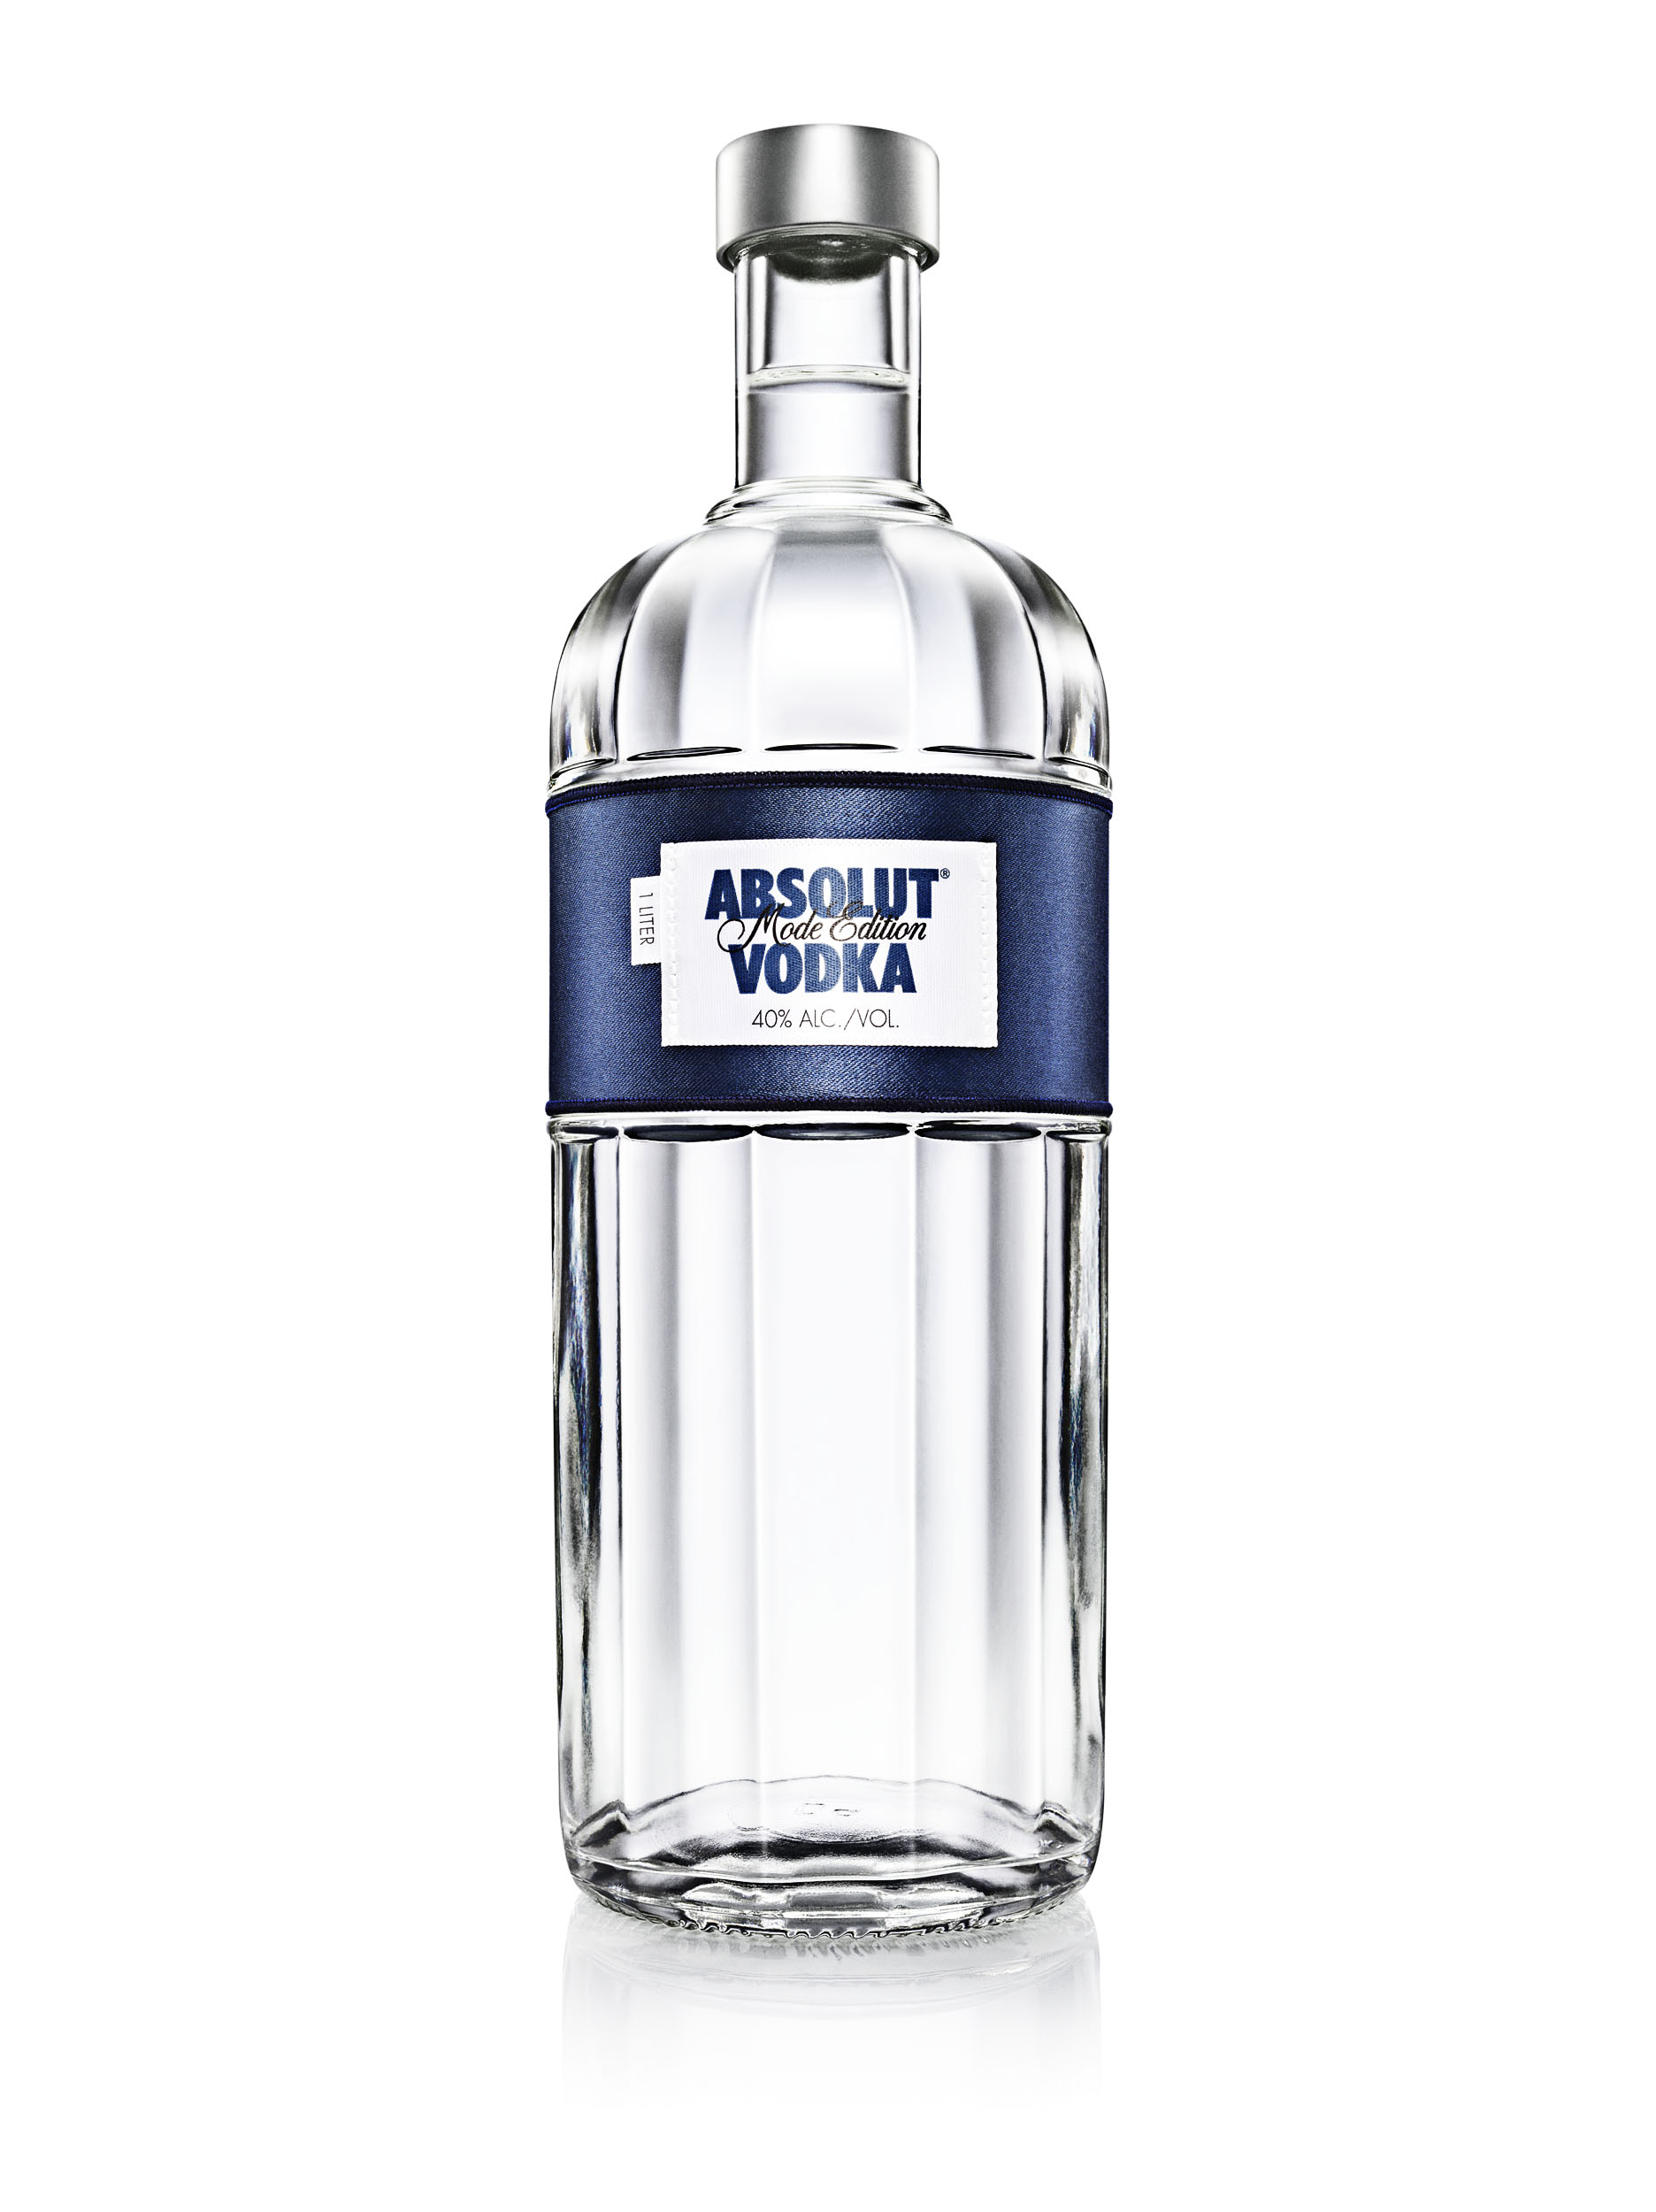 jensmortensen-absolut-vodka-ceb9d3ec